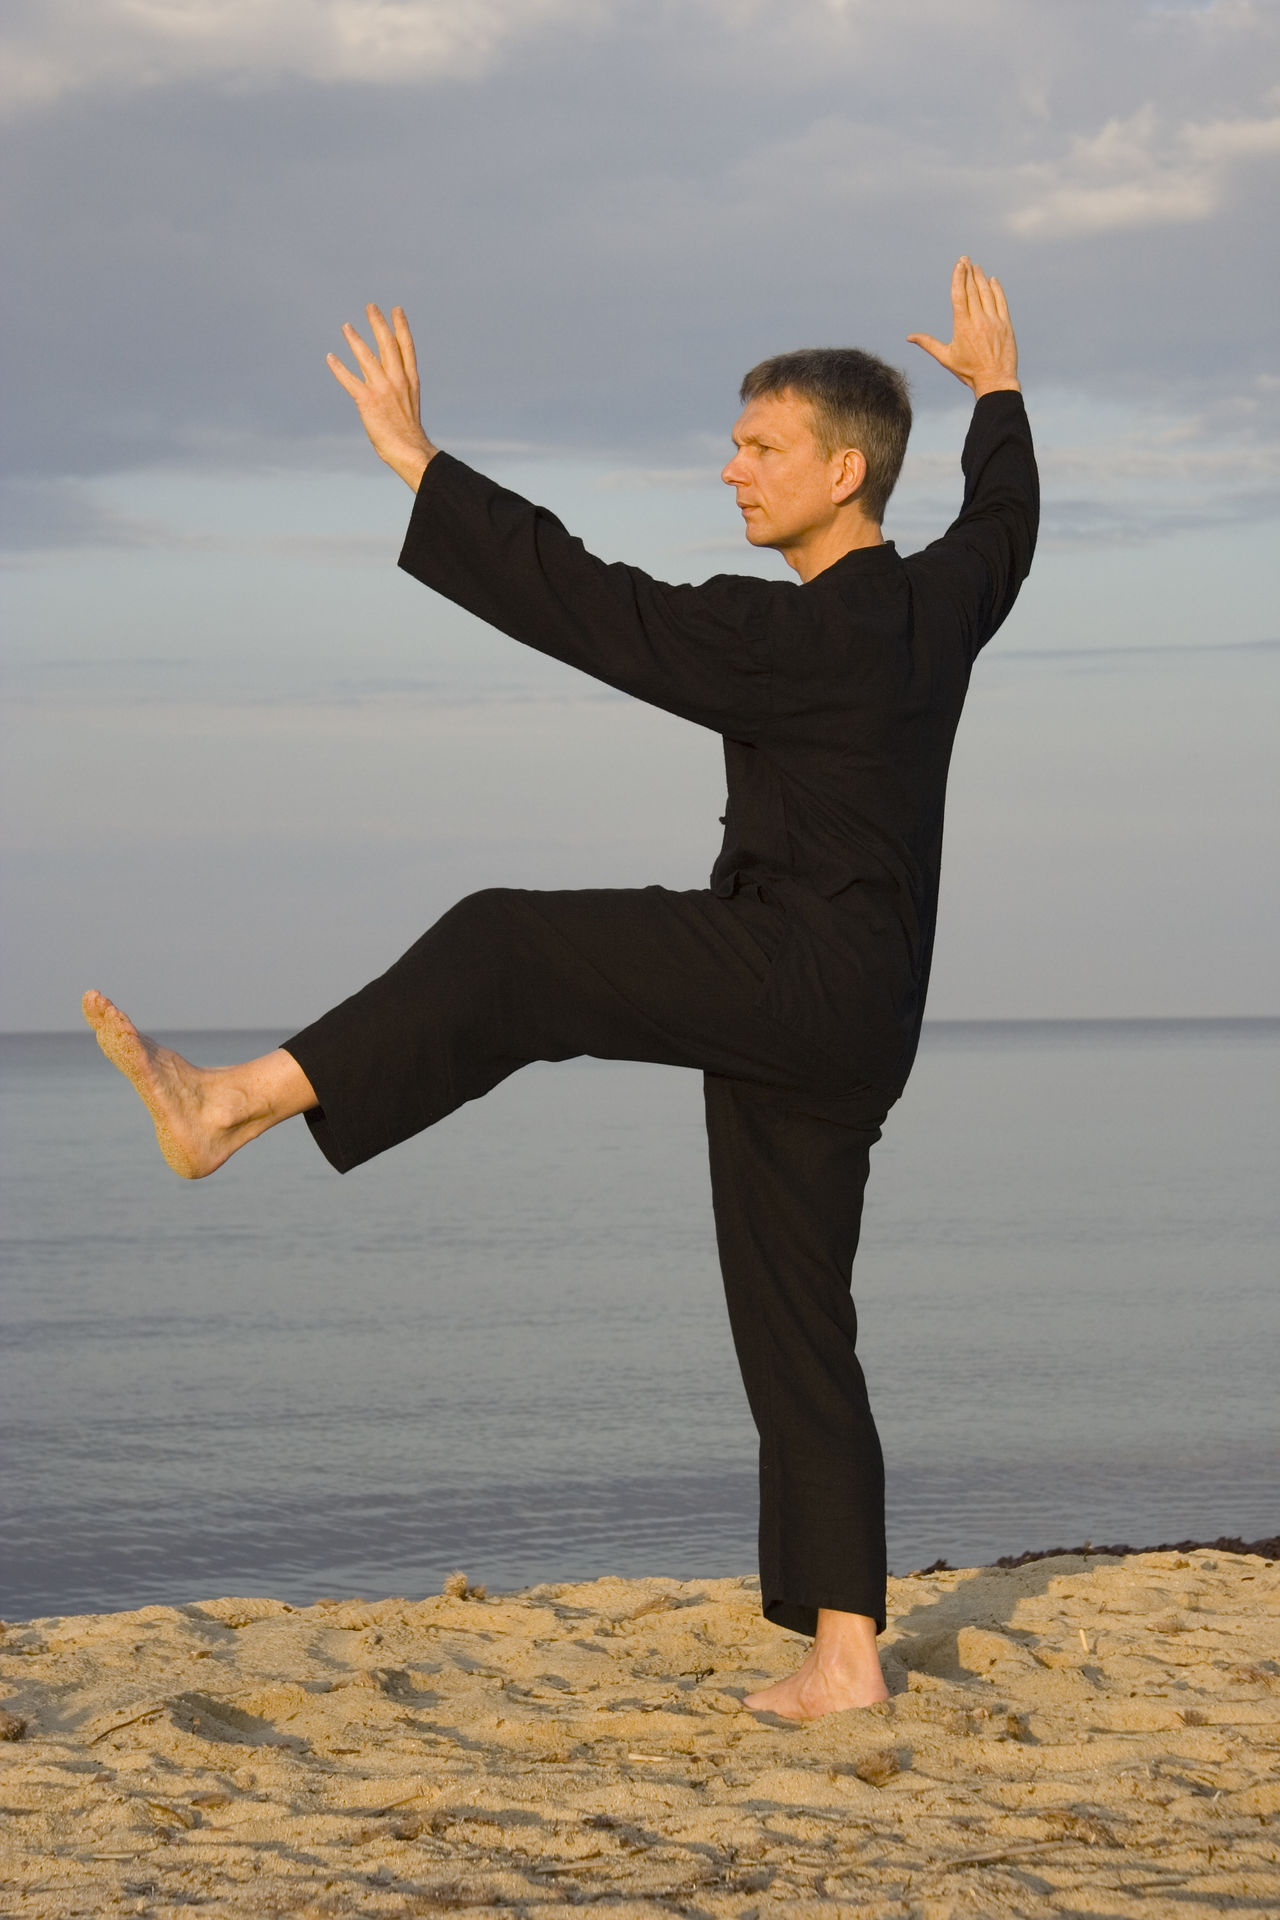 tai chi - posture kick with left heel - art of self-defense Barefoot Beach Chinese Culture Exercise Fitness Fitness Training Full Length Health Healthy Healthy Lifestyle Man Martial Arts Mature Men Moving One Man Only One Mature Man Only Qi Gong Sport Sports Clothing Tai Chi Tai Chi Chuan Taiji Taijiquan Water Zen